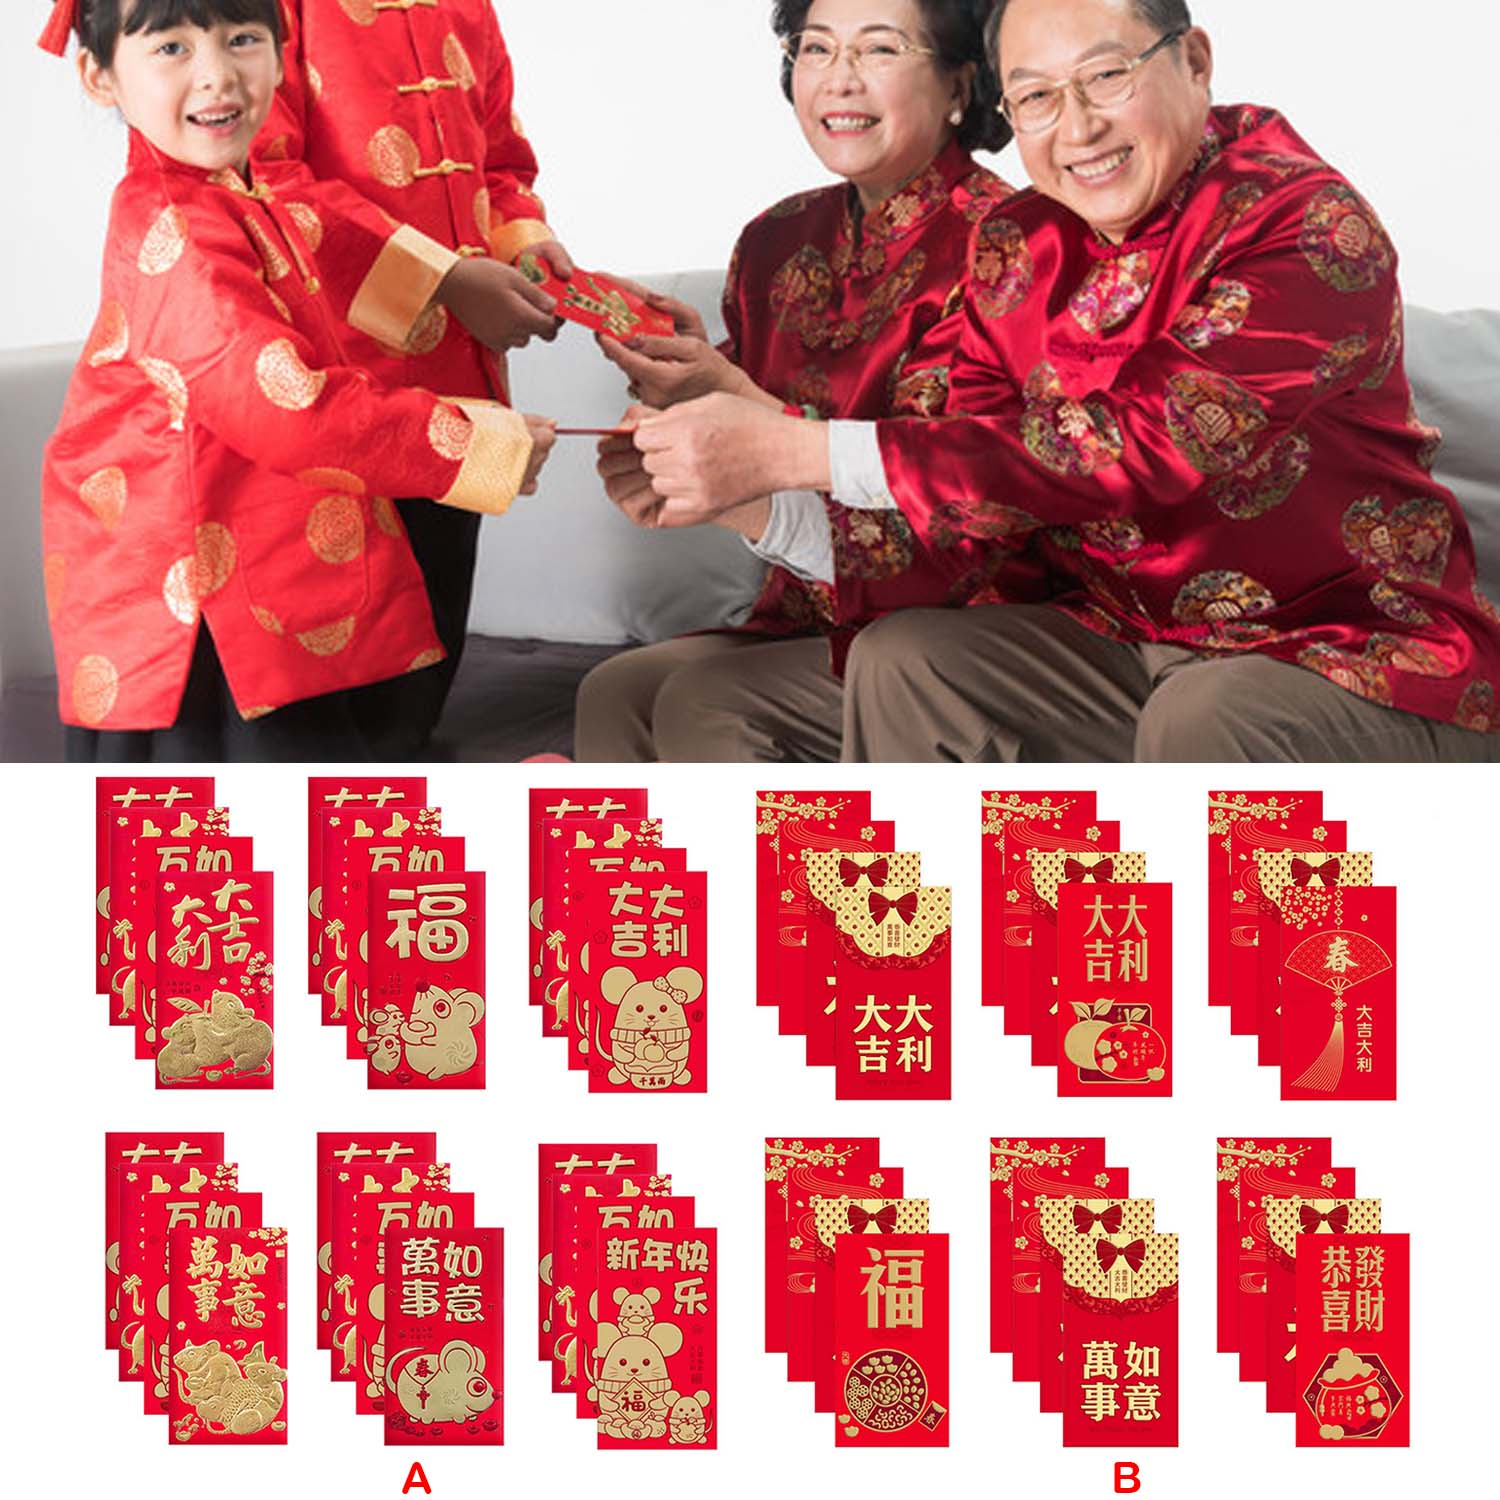 24pcs Chinese Red Lucky Envelopes 2020 Year Of The Rat Hong Bao Festival Money Packets For Lunar New Year Spring Festival